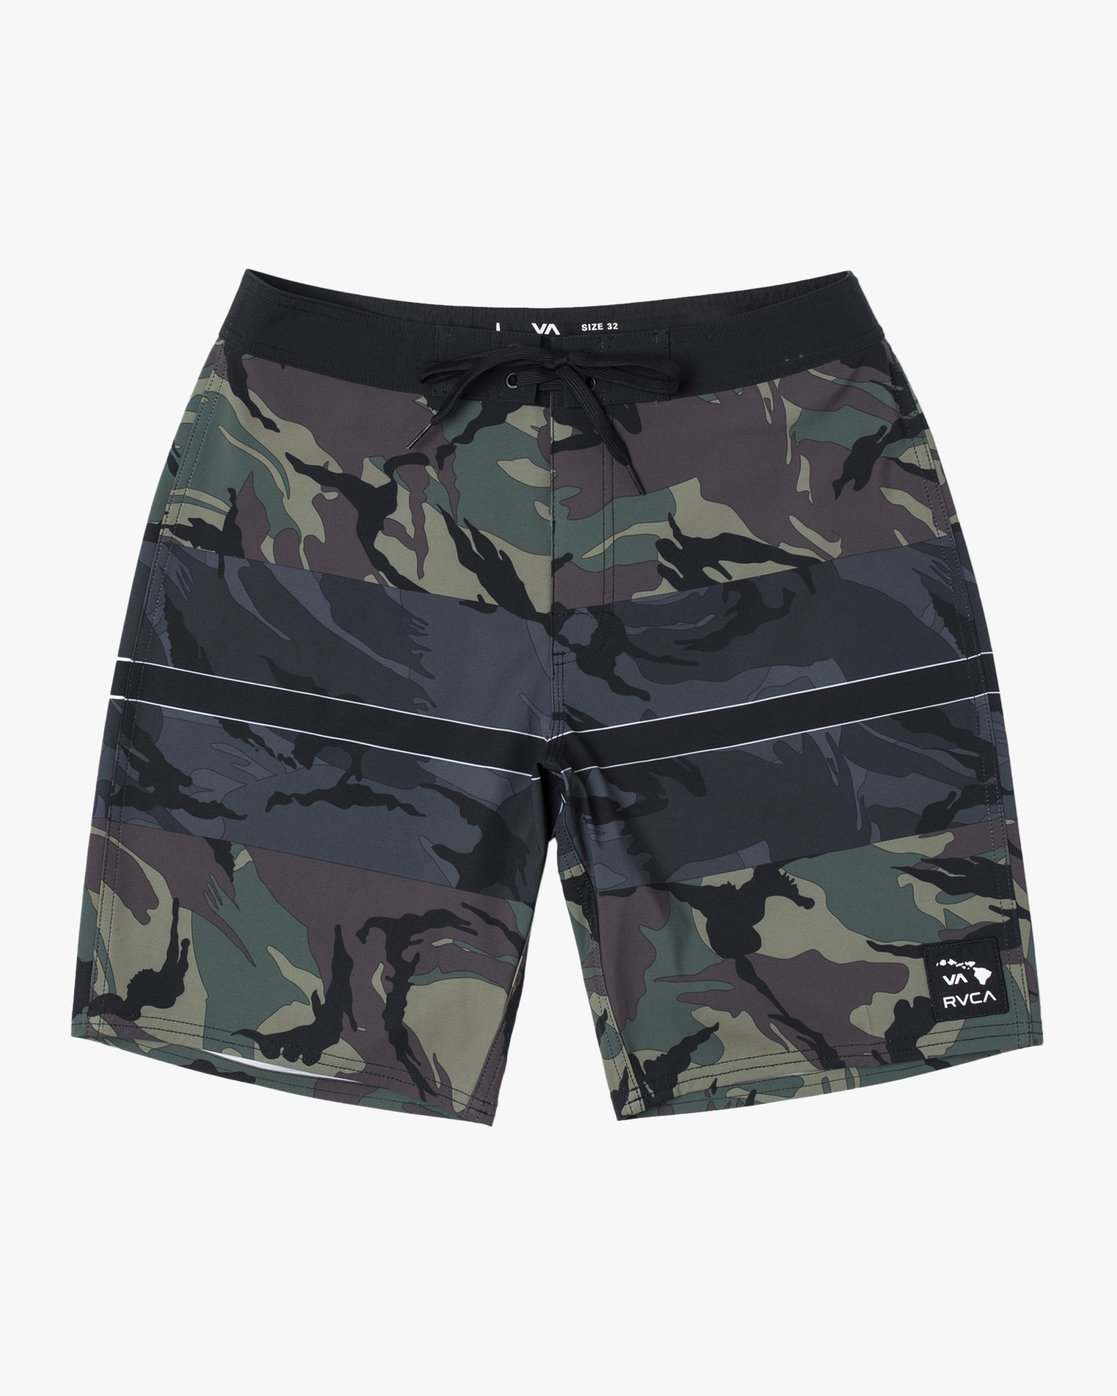 0 VA ISLANDS BOARDSHORT Black M1223RVI RVCA